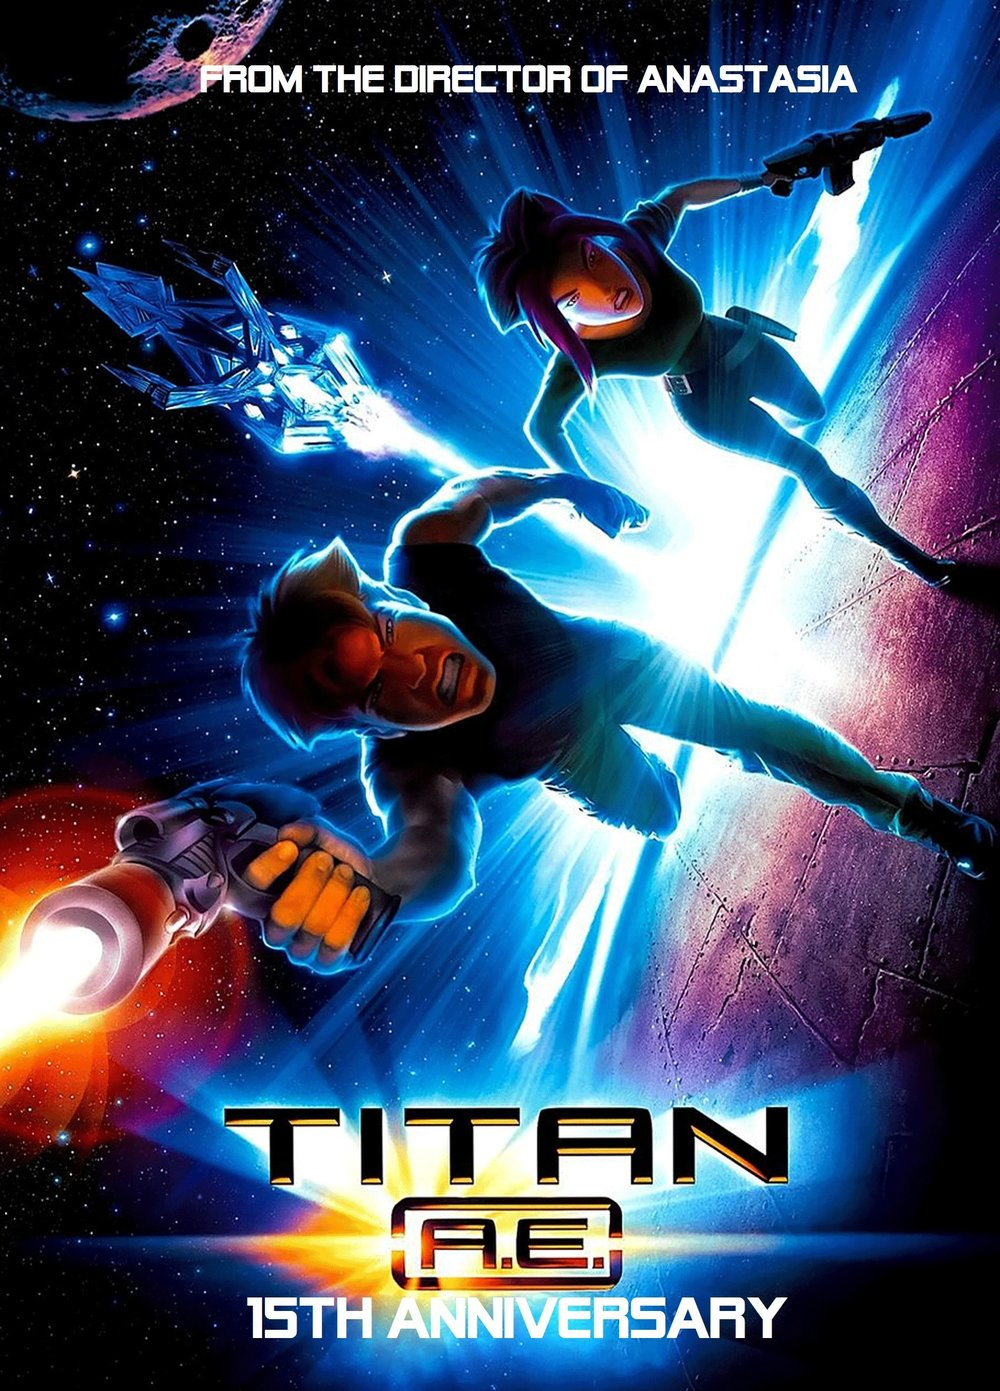 titan ae movie poster.jpg